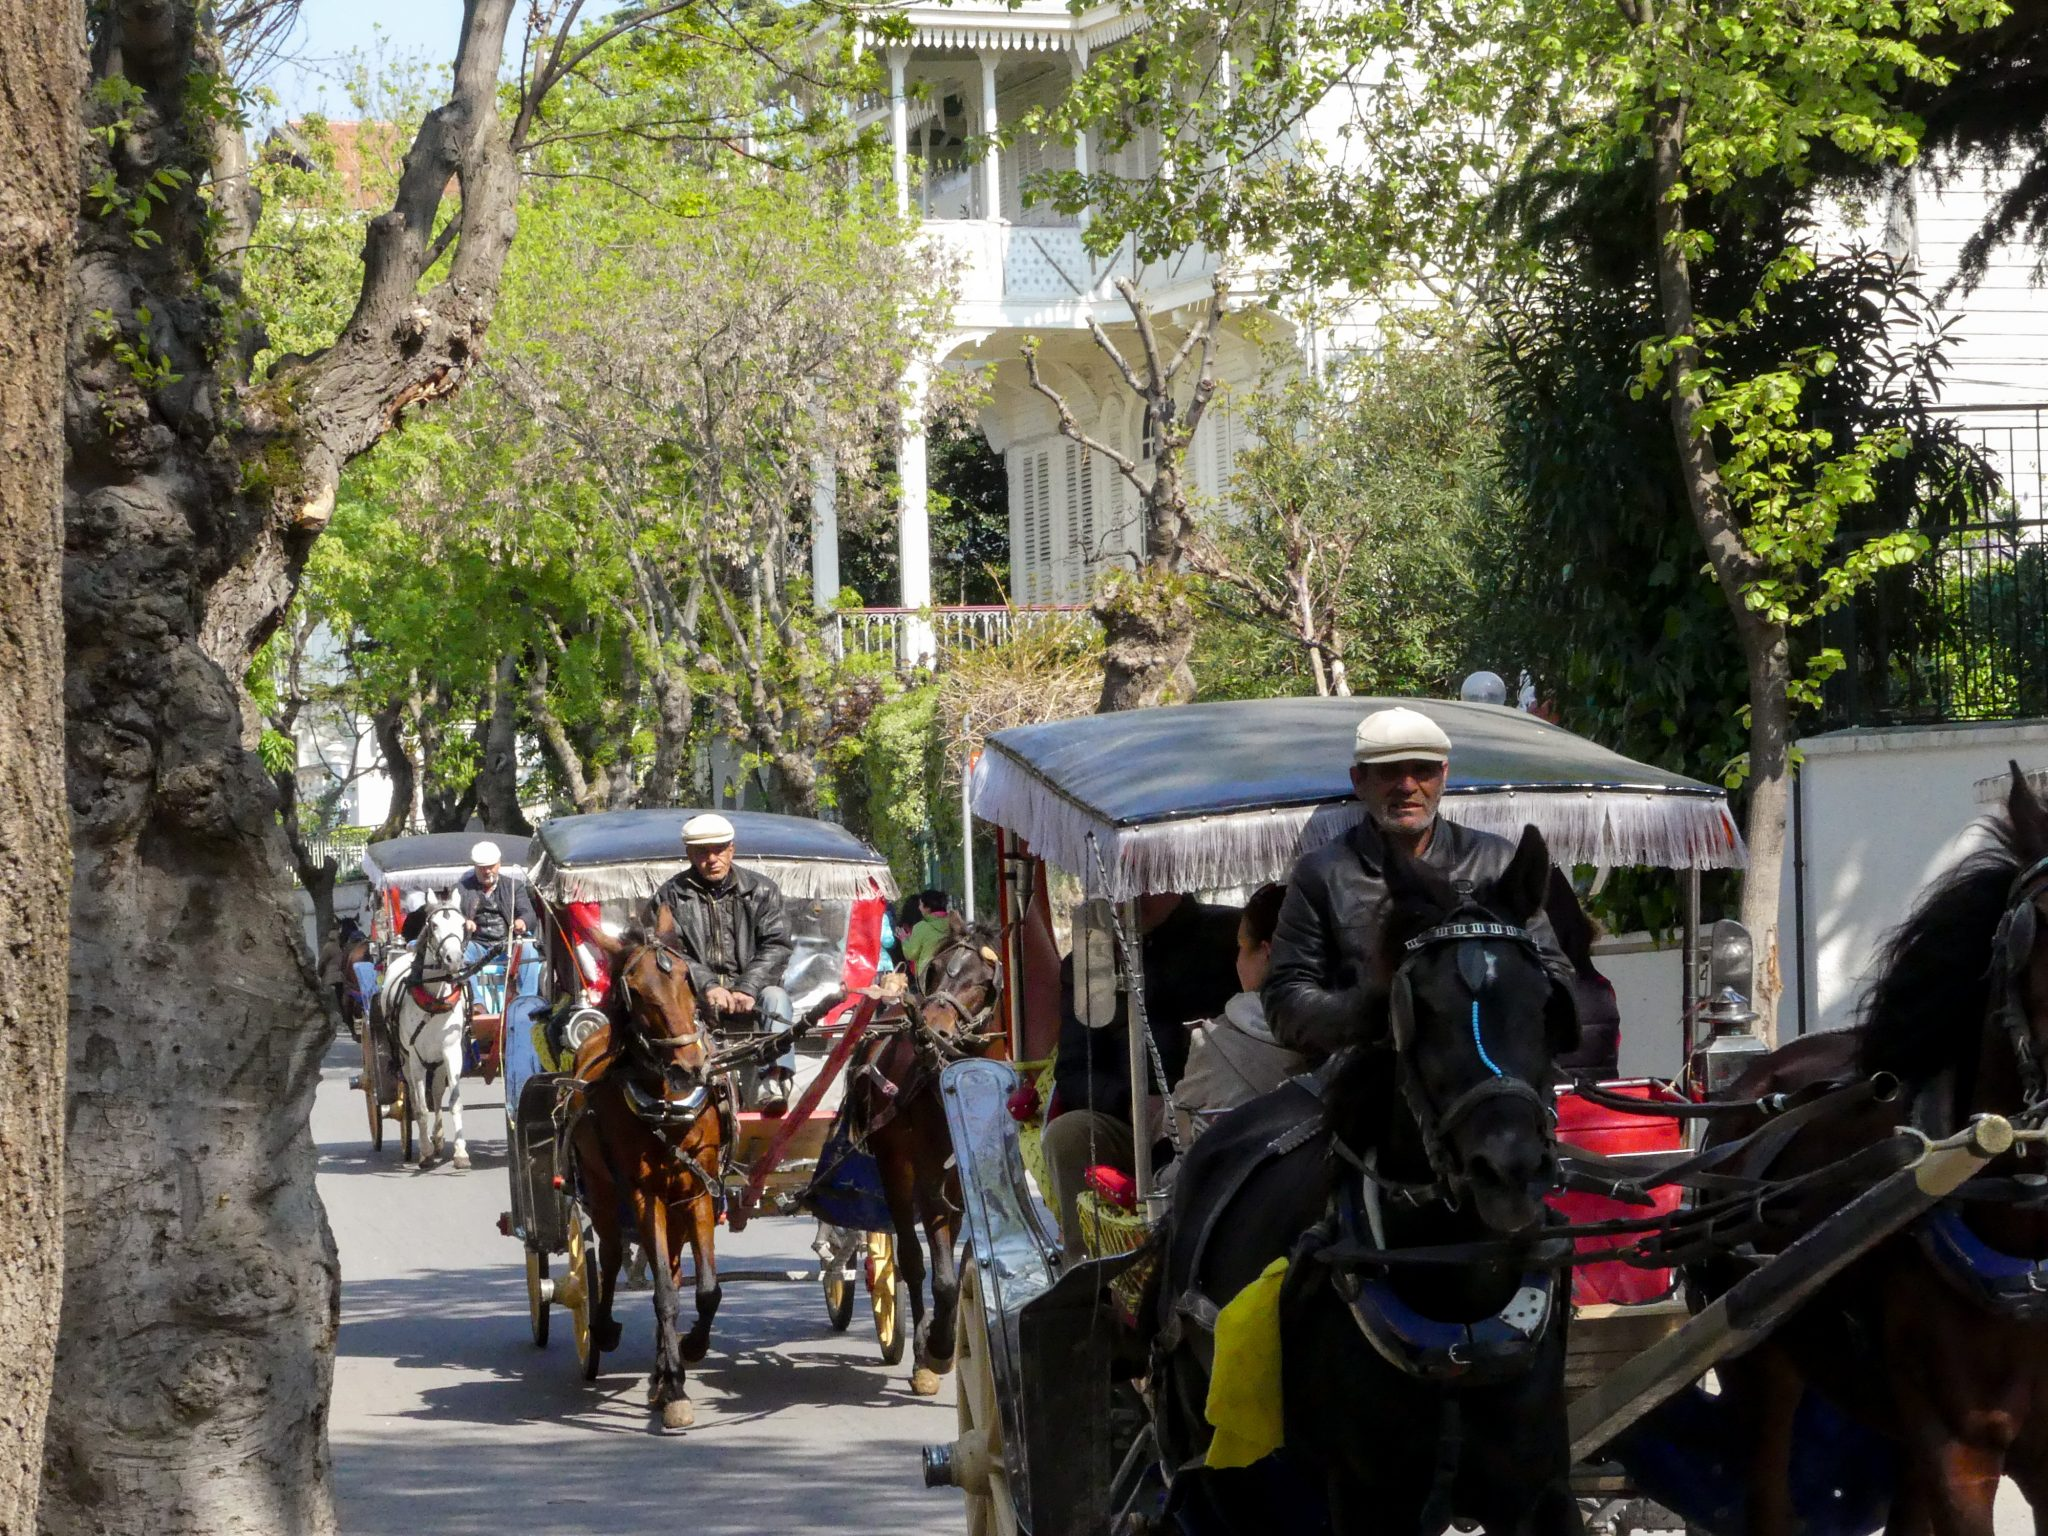 Horse carriages in the Prince Islands